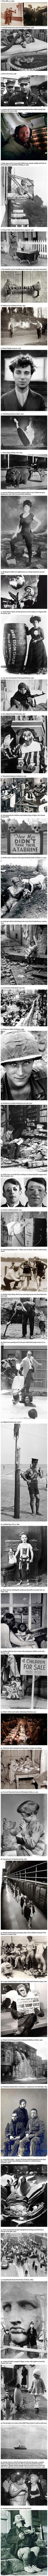 Sometimes, one simple picture can tell you more about history than any story you might read or any document you might analyze.